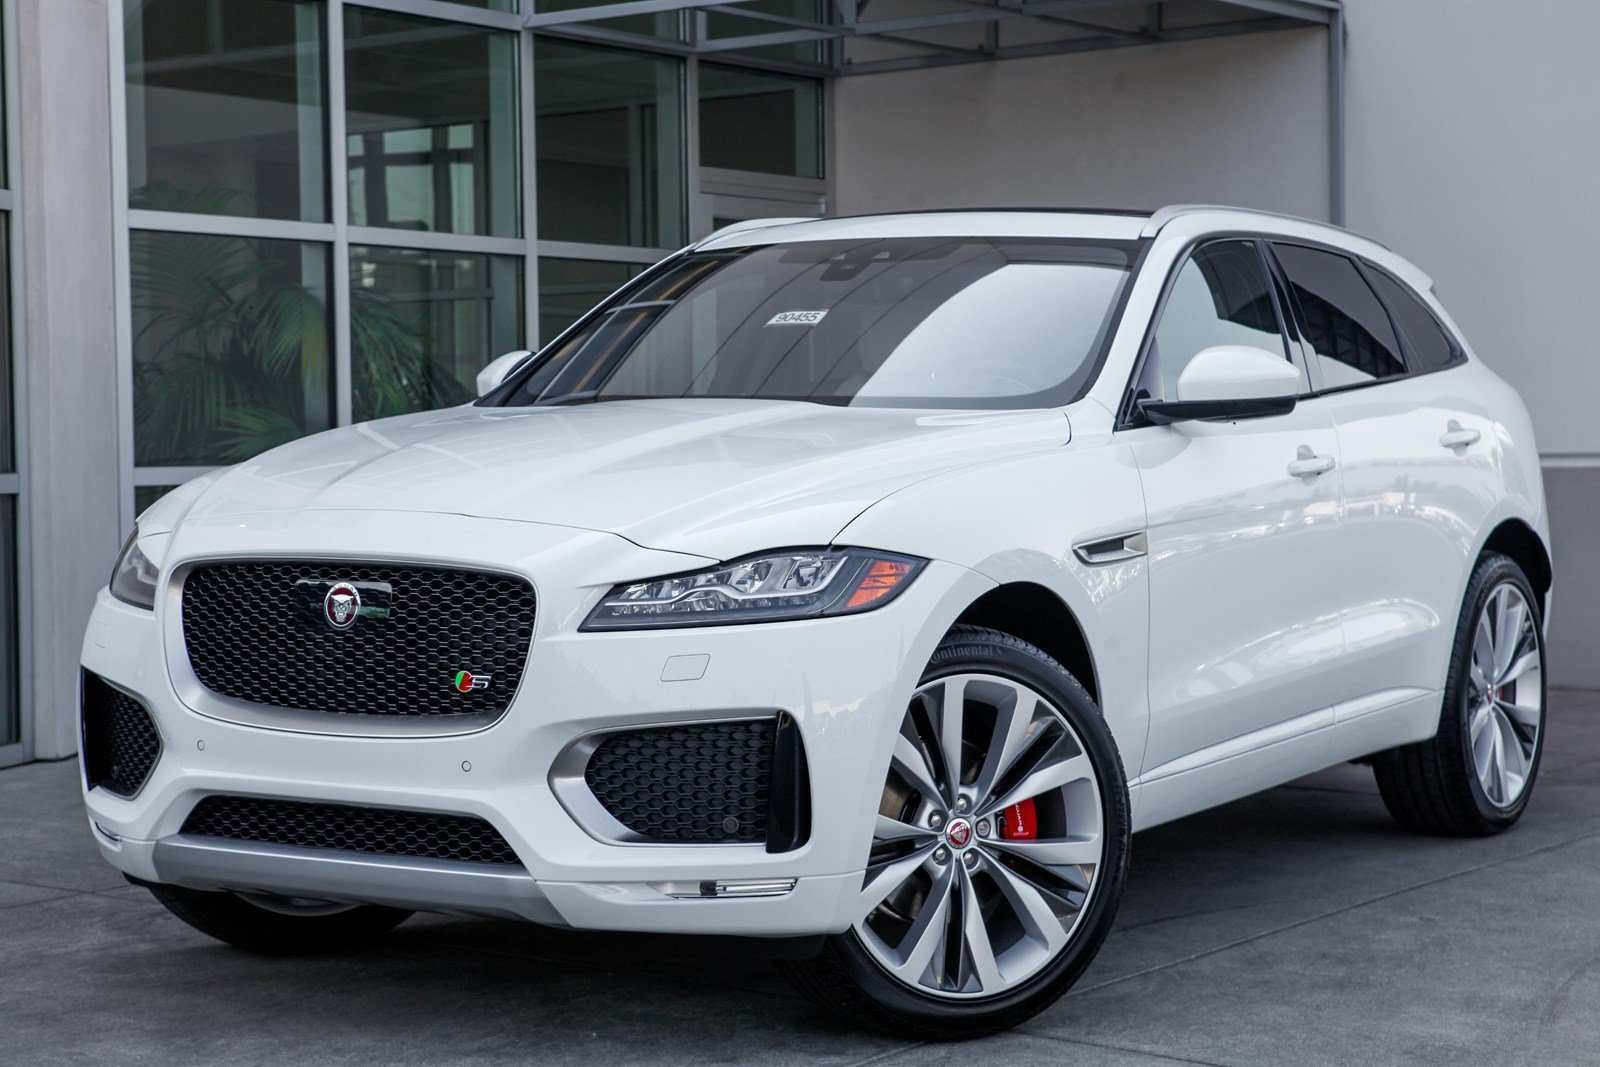 99 Great Jaguar 2019 F Pace Performance with Jaguar 2019 F Pace